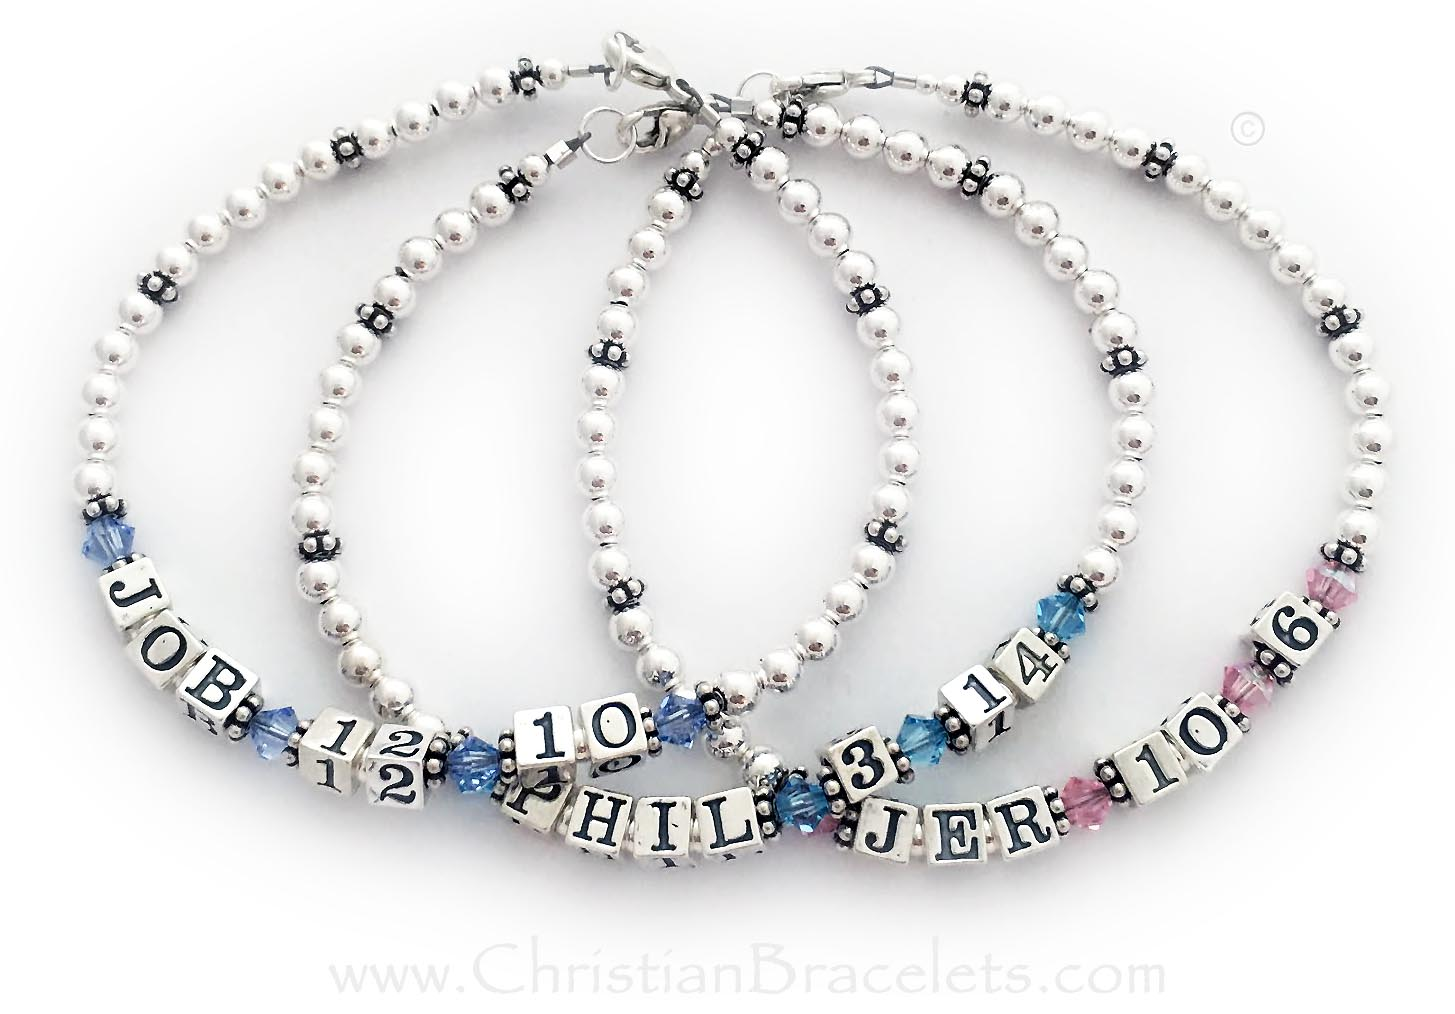 JOB 12:10 - Philippians 3:14 and Jeremiah 10:6 Bible Verse Bracelets